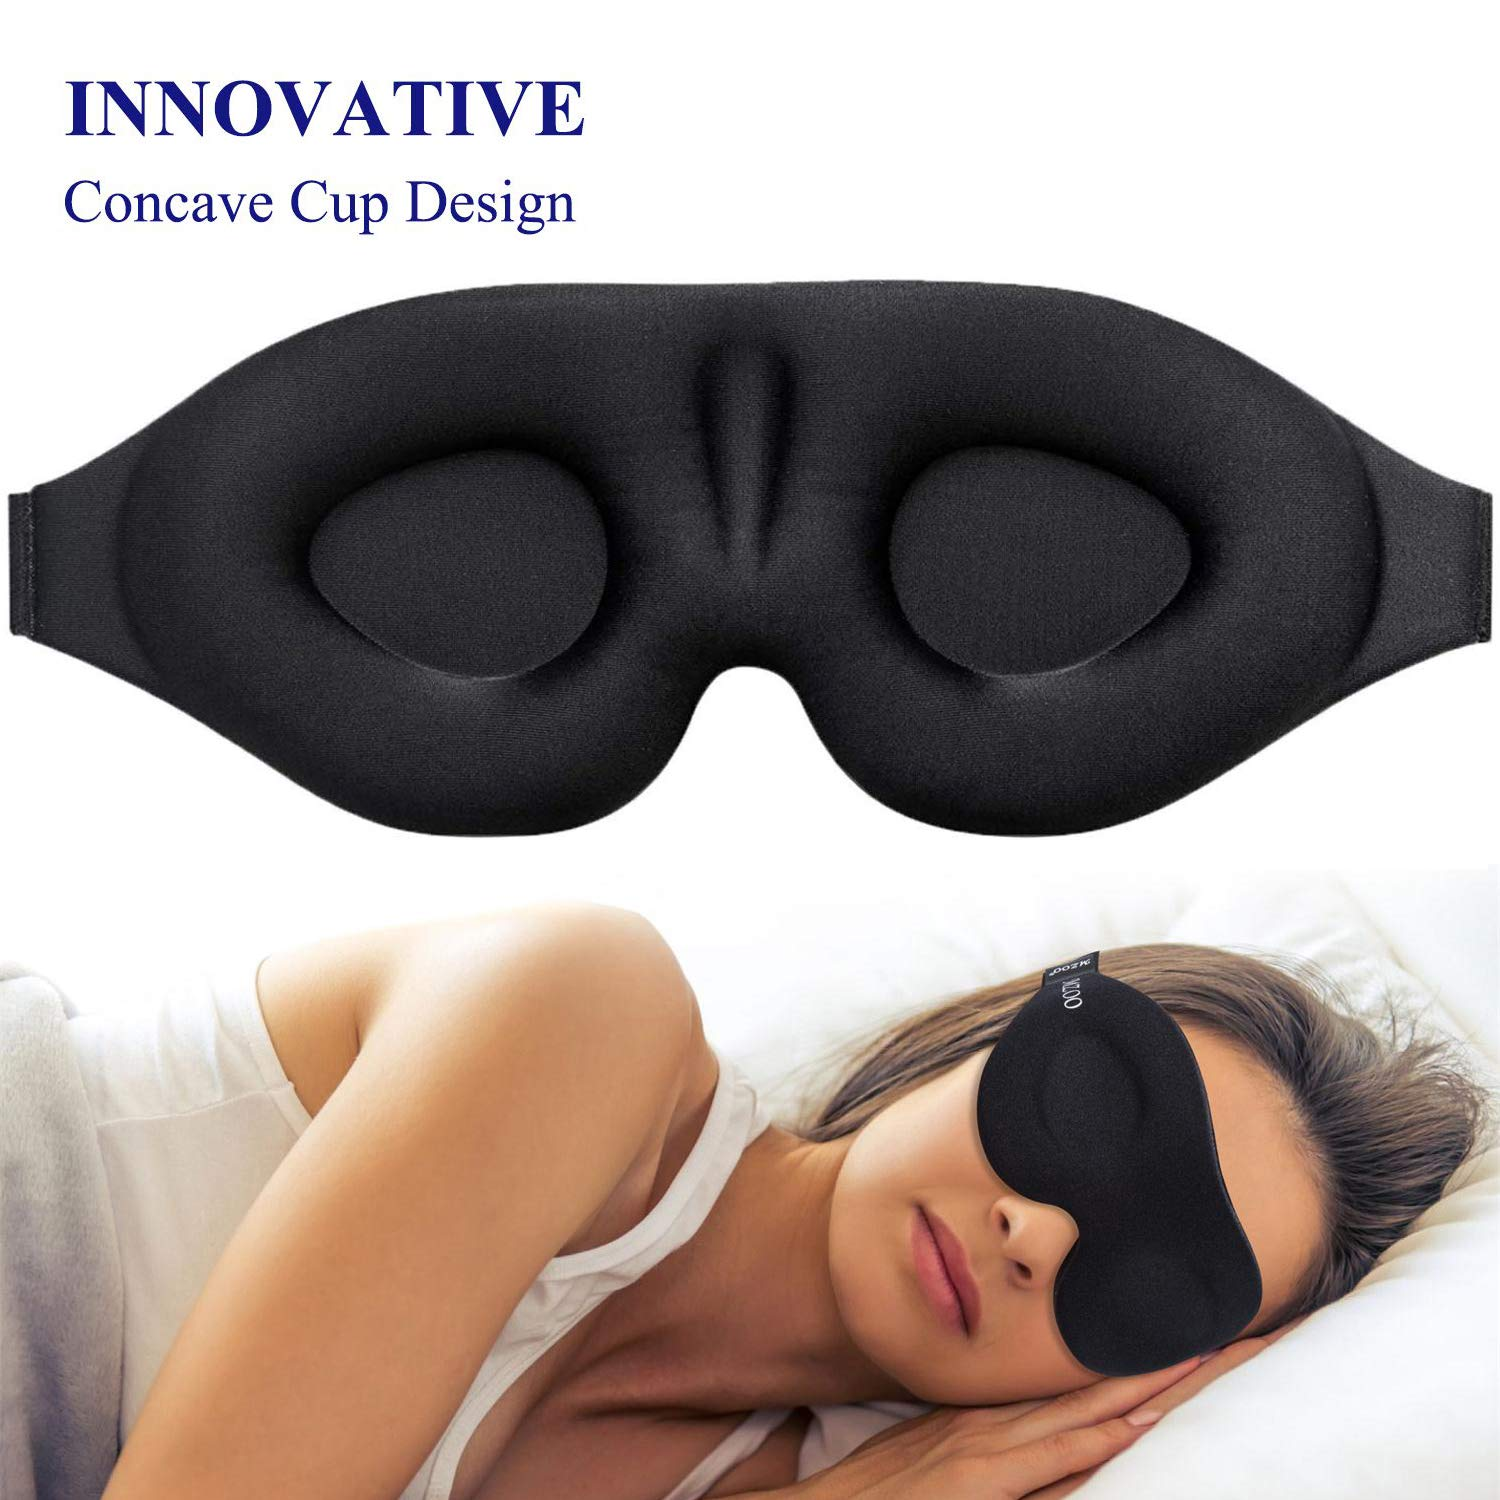 Sleep Mask for Women Men, Eye mask for Sleeping 3D Contoured Cup Blindfold, Concave Molded Night Sleep Mask, Block Out Light, Soft Comfort Eye Shade Cover for Yoga Meditation by YIVIEW